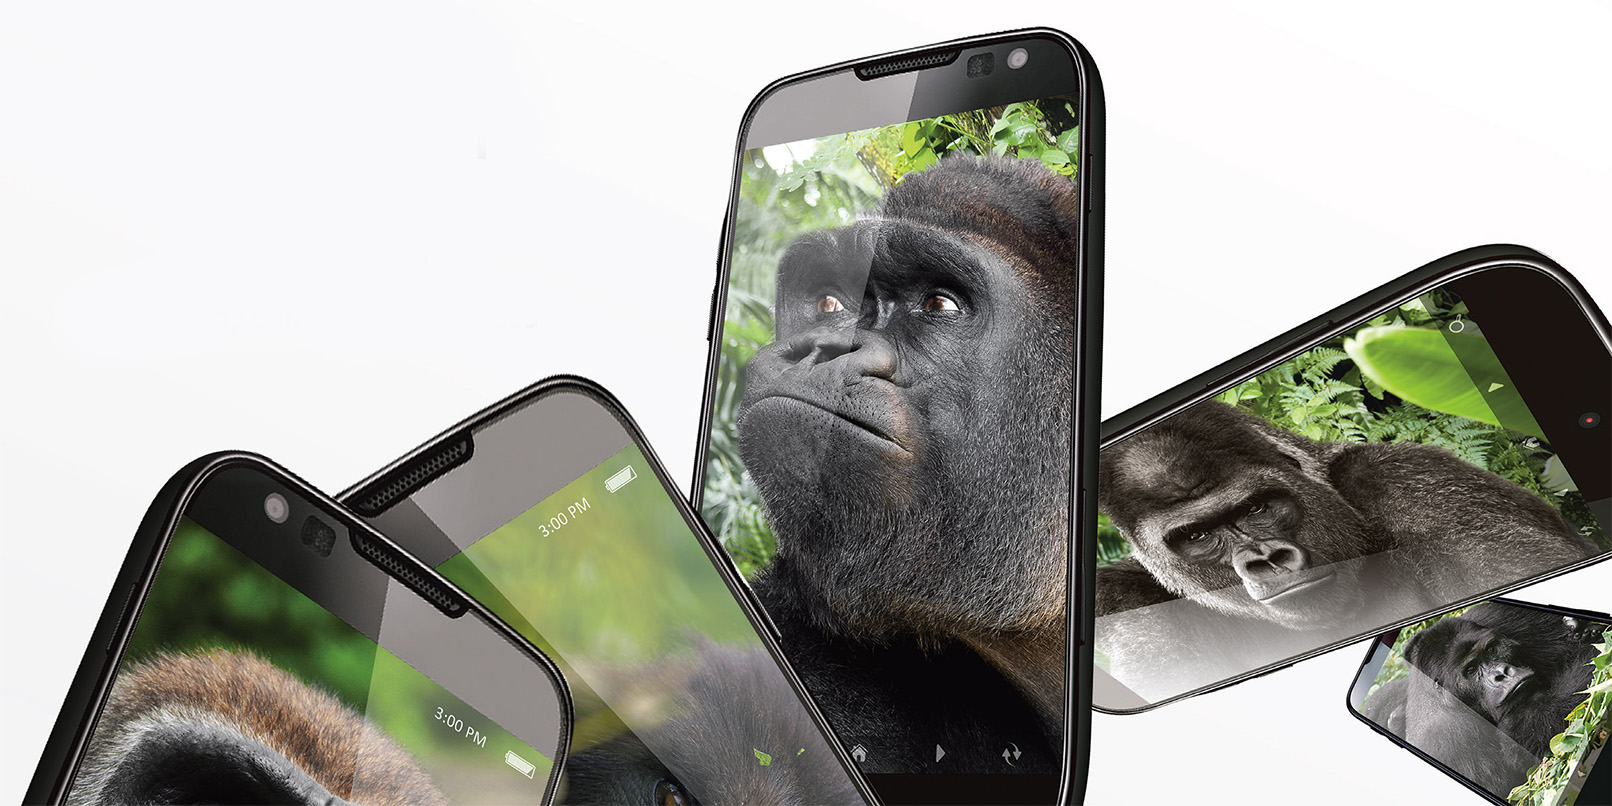 Corning says Gorilla Glass 5 for phones will survive 1.6m drops